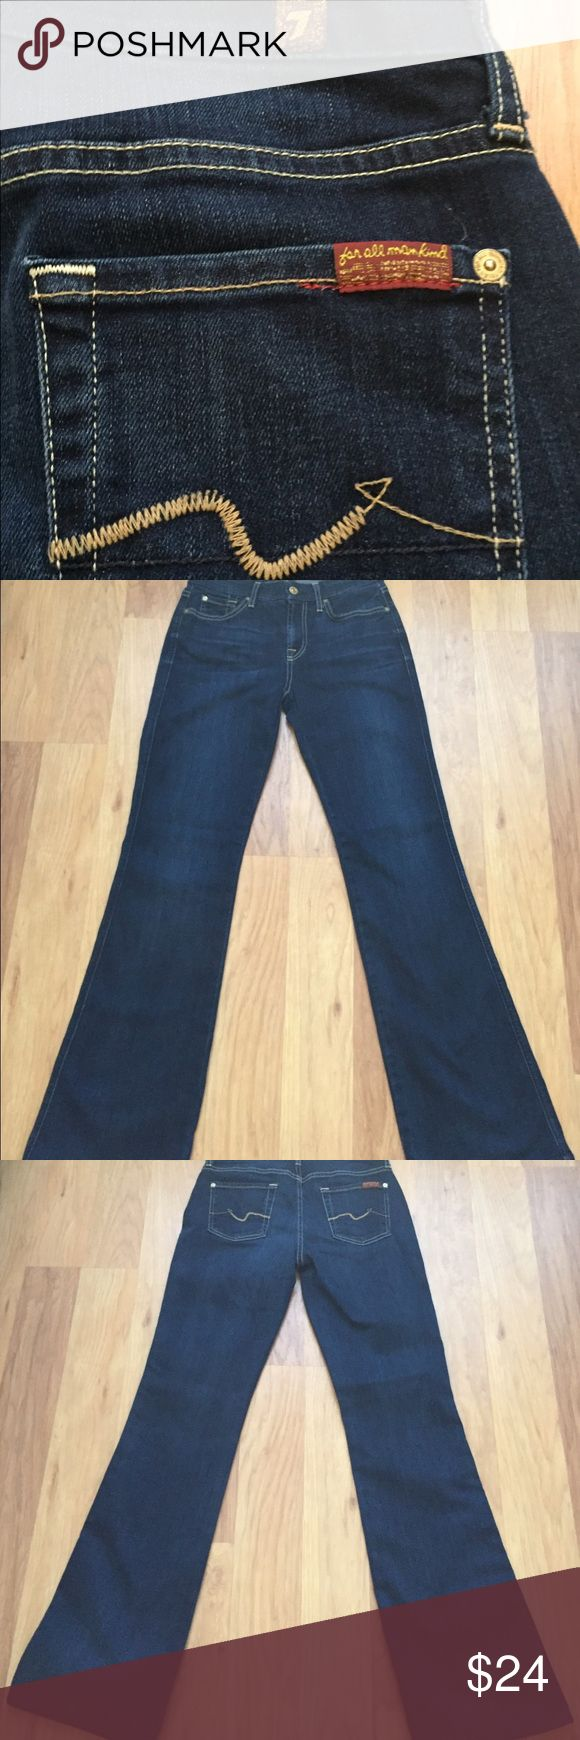 Seven for all mankind dark denim bootleg jeans 26 These jeans look brand new!! Only worn once and they are beautiful. Seven for all mankind dark denim Kimmie bootleg jeans.   Size 26, waist 13, hips 16, length 40, inseam 31.5 7 for all Mankind Jeans Boot Cut